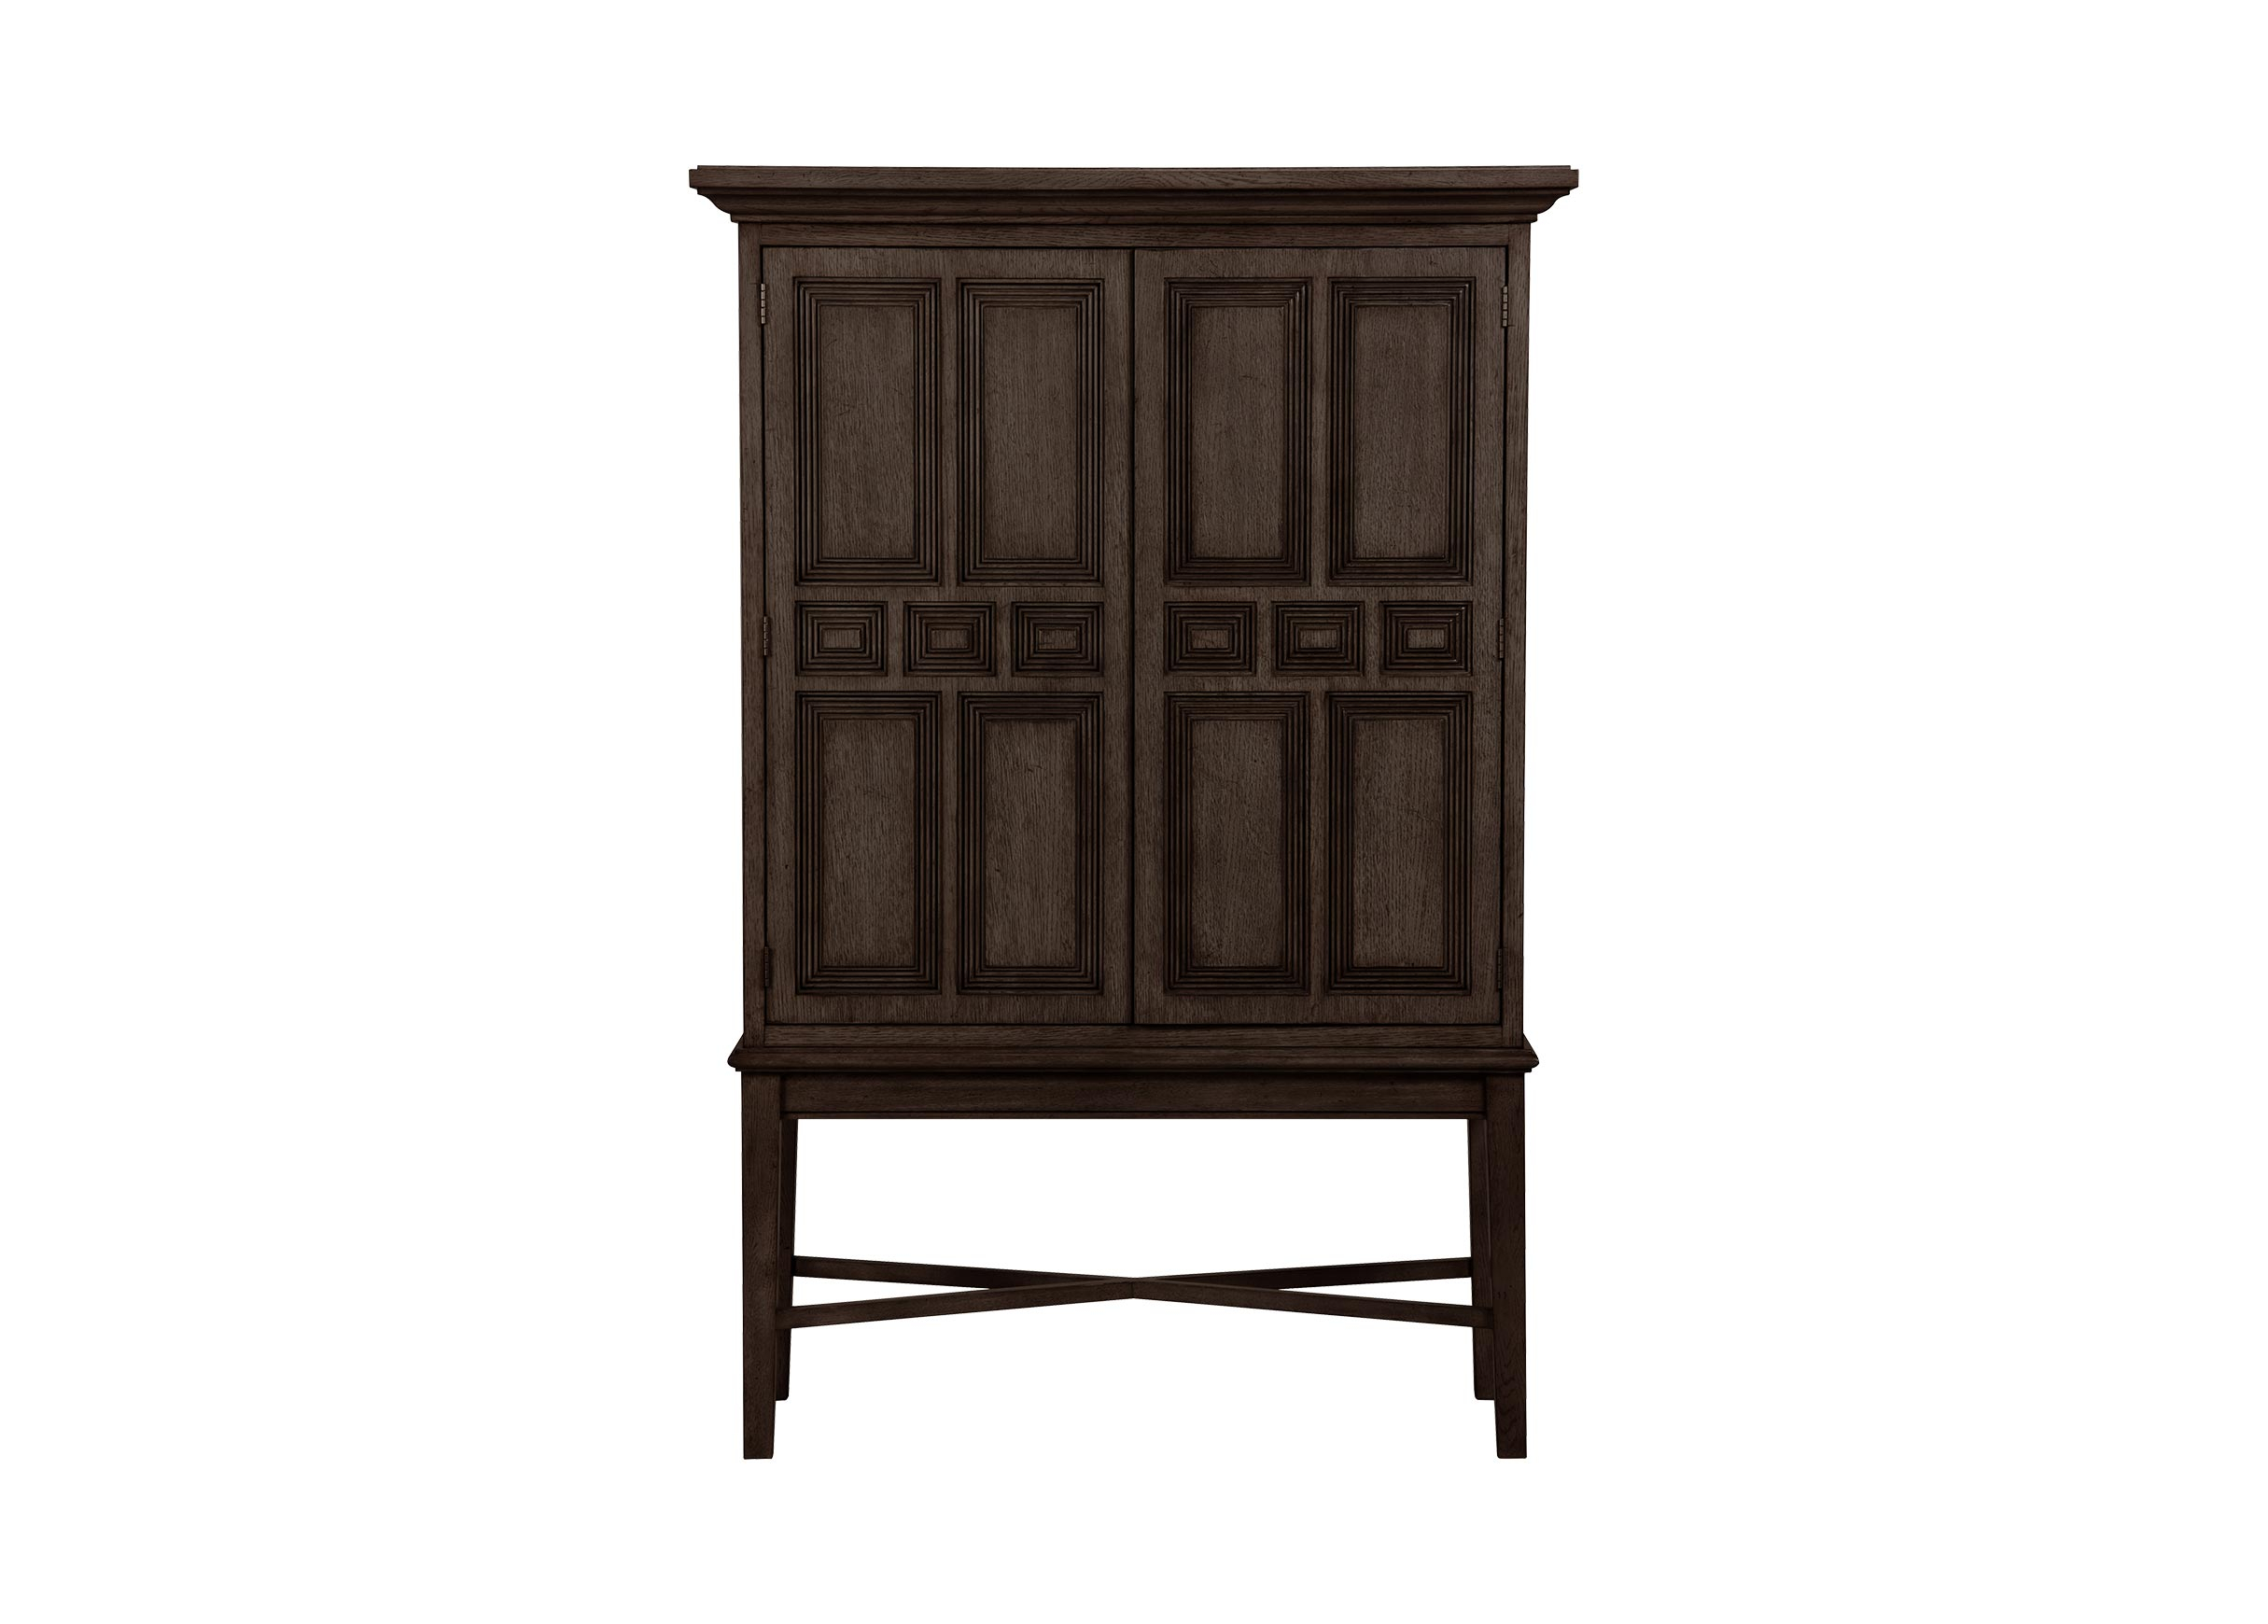 Dining Room Storage Cabinets | Display Cabinets | Ethan Allen Inside Wooden Buffets With Two Side Door Storage Cabinets And Stemware Rack (Photo 28 of 30)